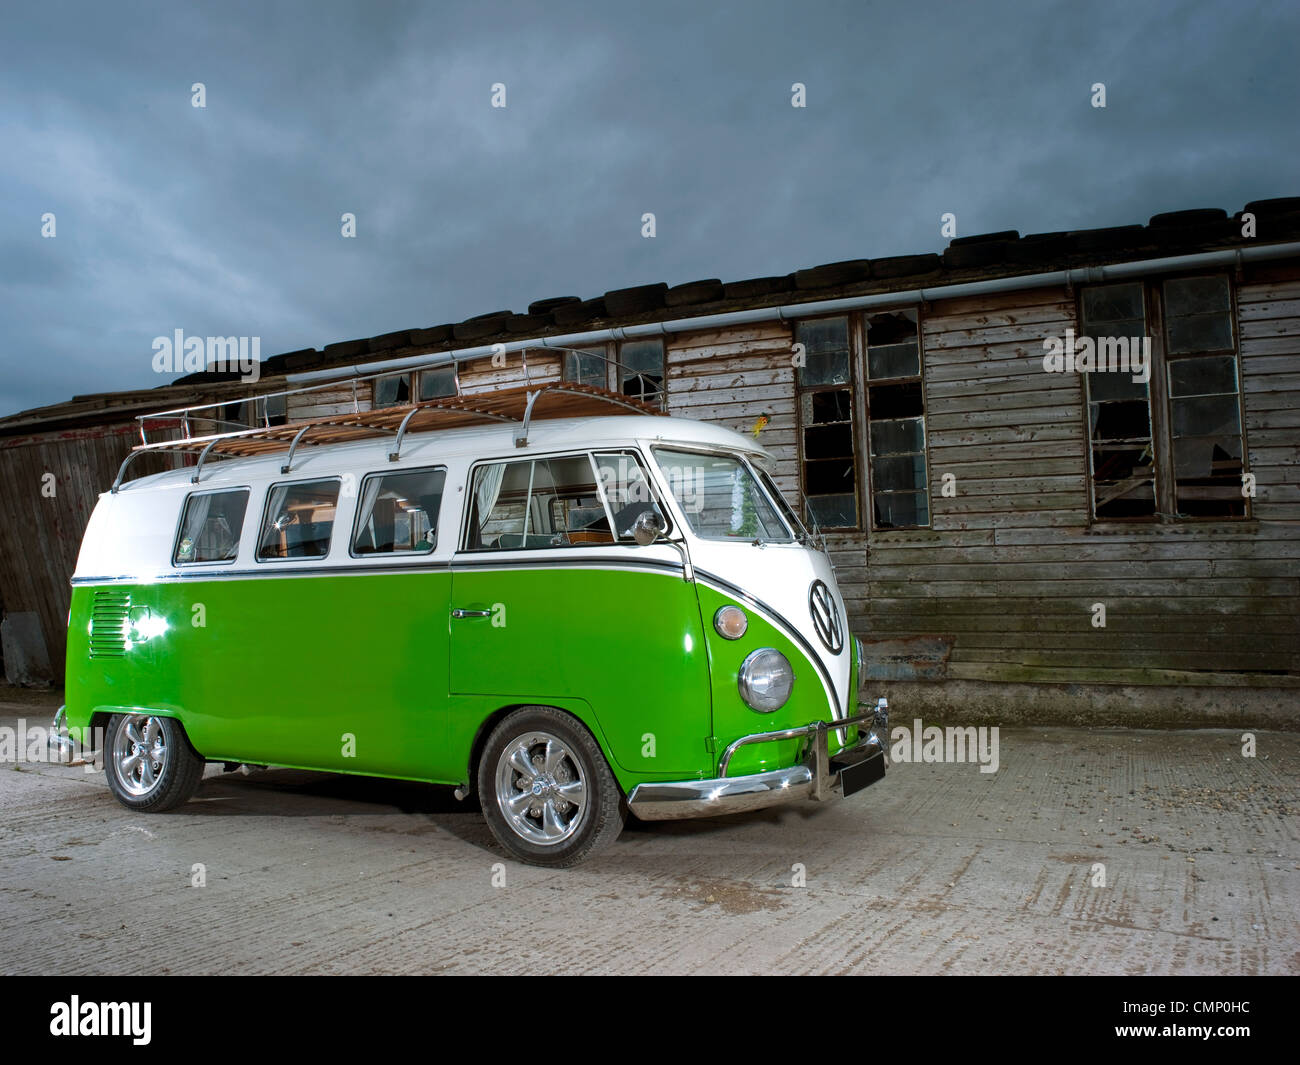 Green Vw Volkswagen Split Screen Camper Van Bus Lowered Modified Pimped Lime Hippie Hippy 1960s 1950s Aircooled Retro Old Barn